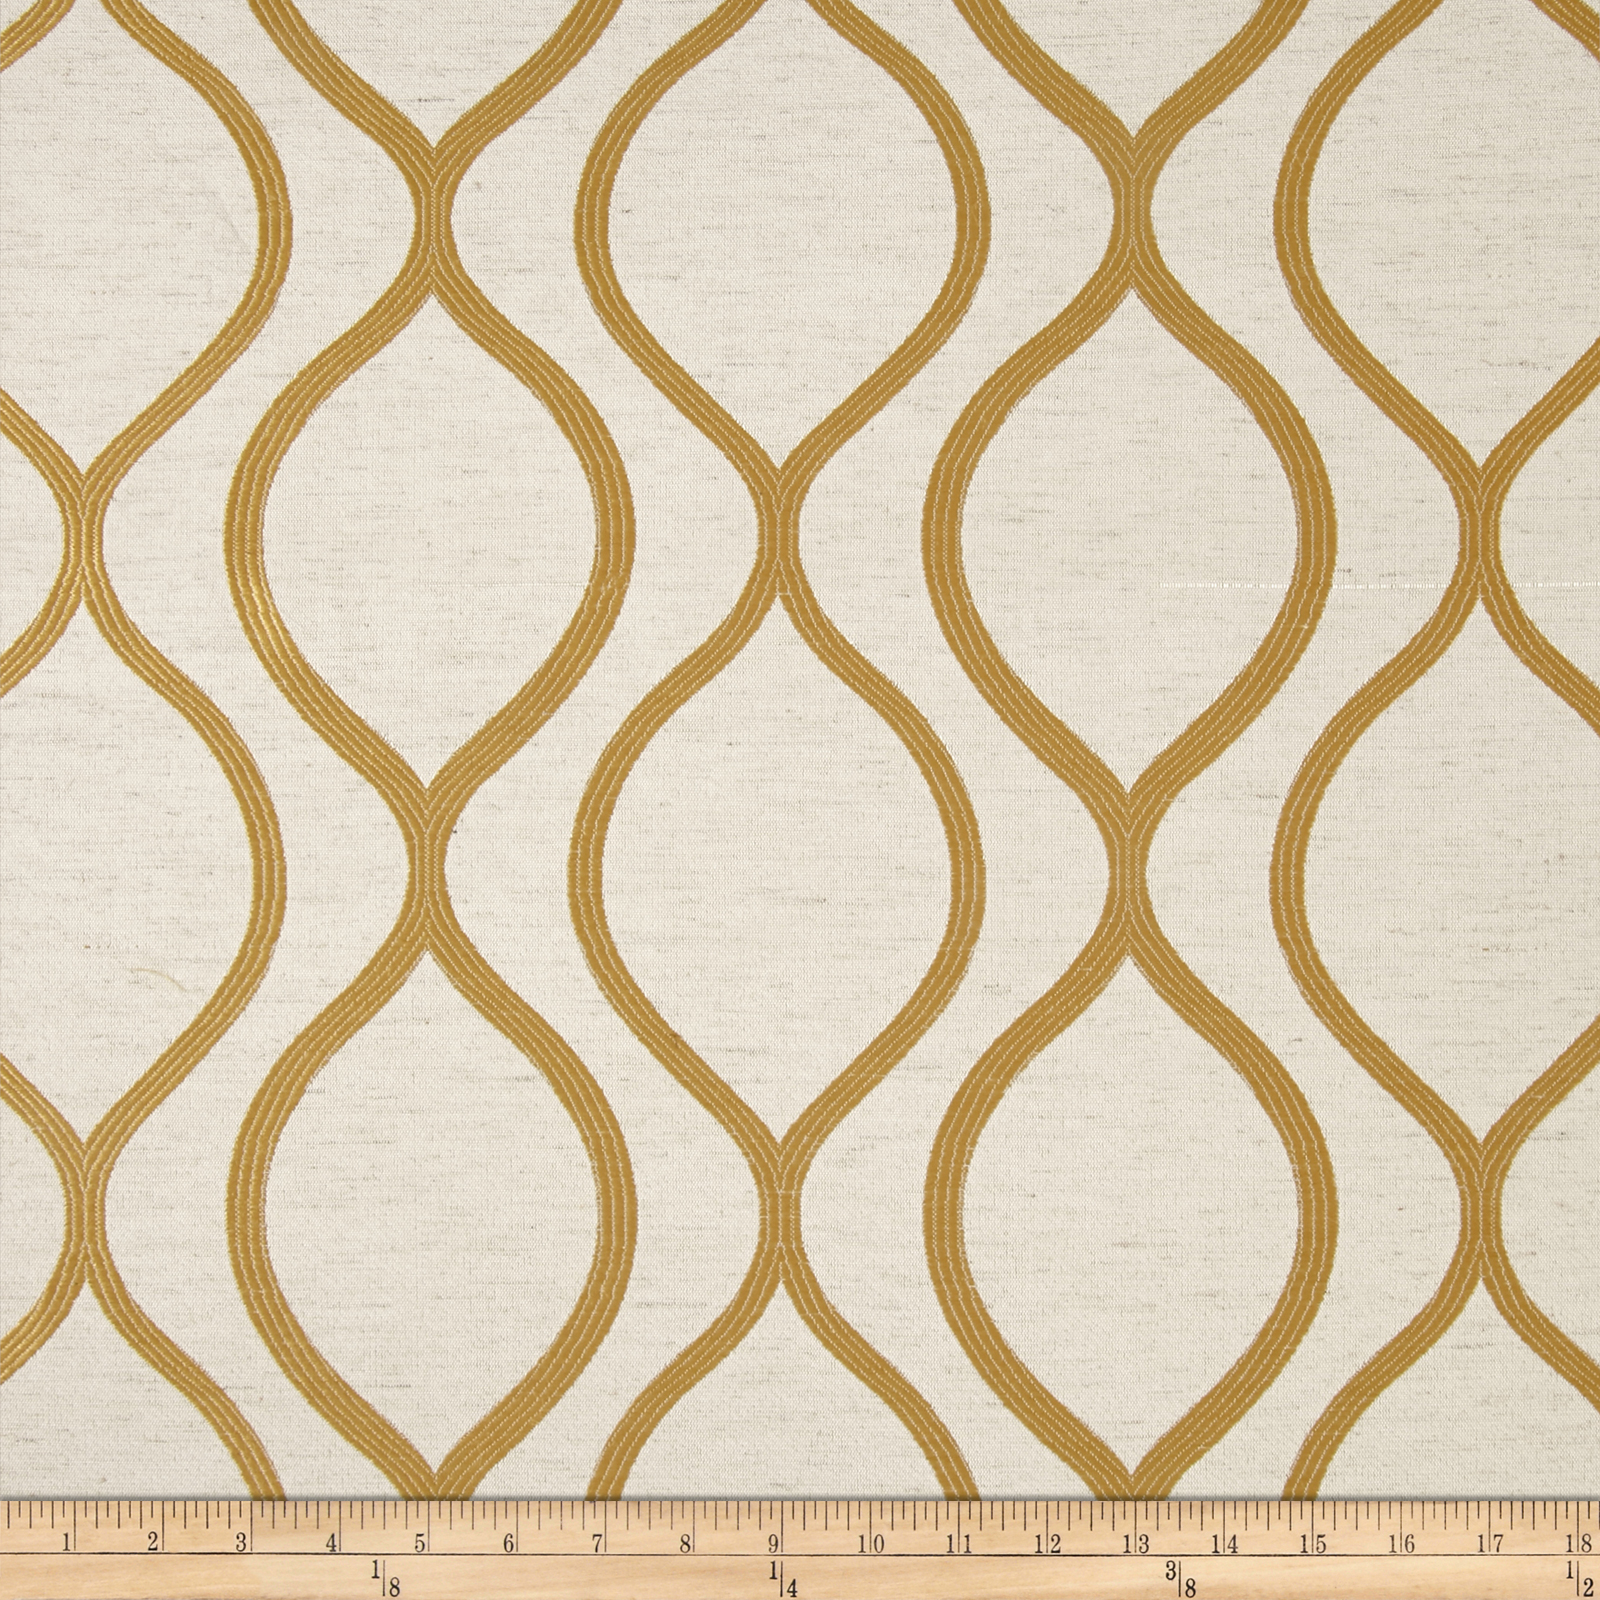 Eroica Lancaster Jacquard Gold Fabric by Eroica in USA